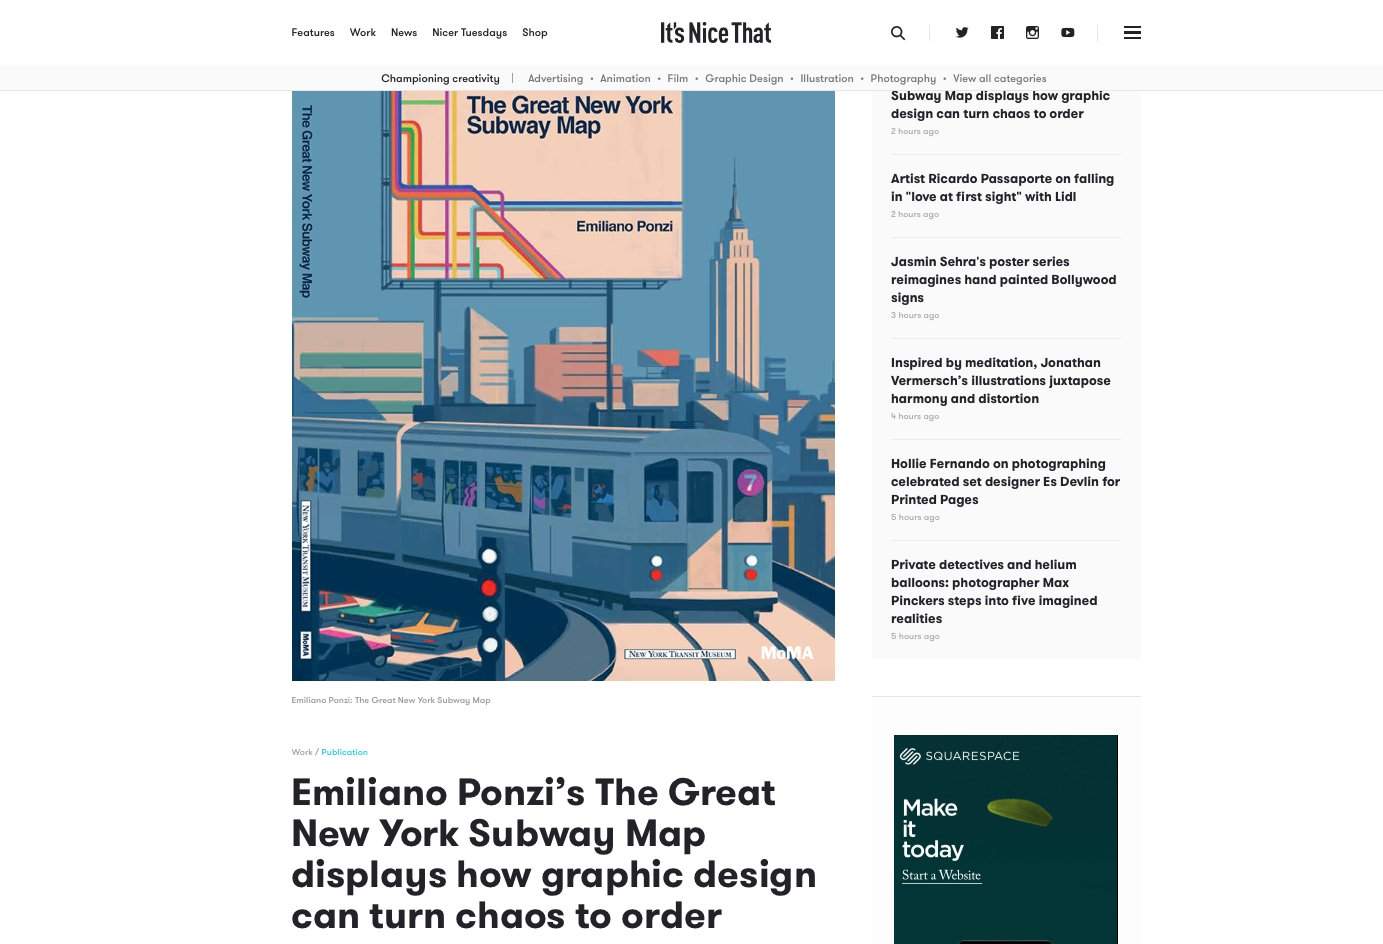 Emiliano Ponzi On Twitter Q A About Thegreatnewyorksubwaymap On Itsnicethat Thanks For The Interview To Emmalathamphillips Https T Co Wkha2eqqrn Https T Co Fdghbey45v